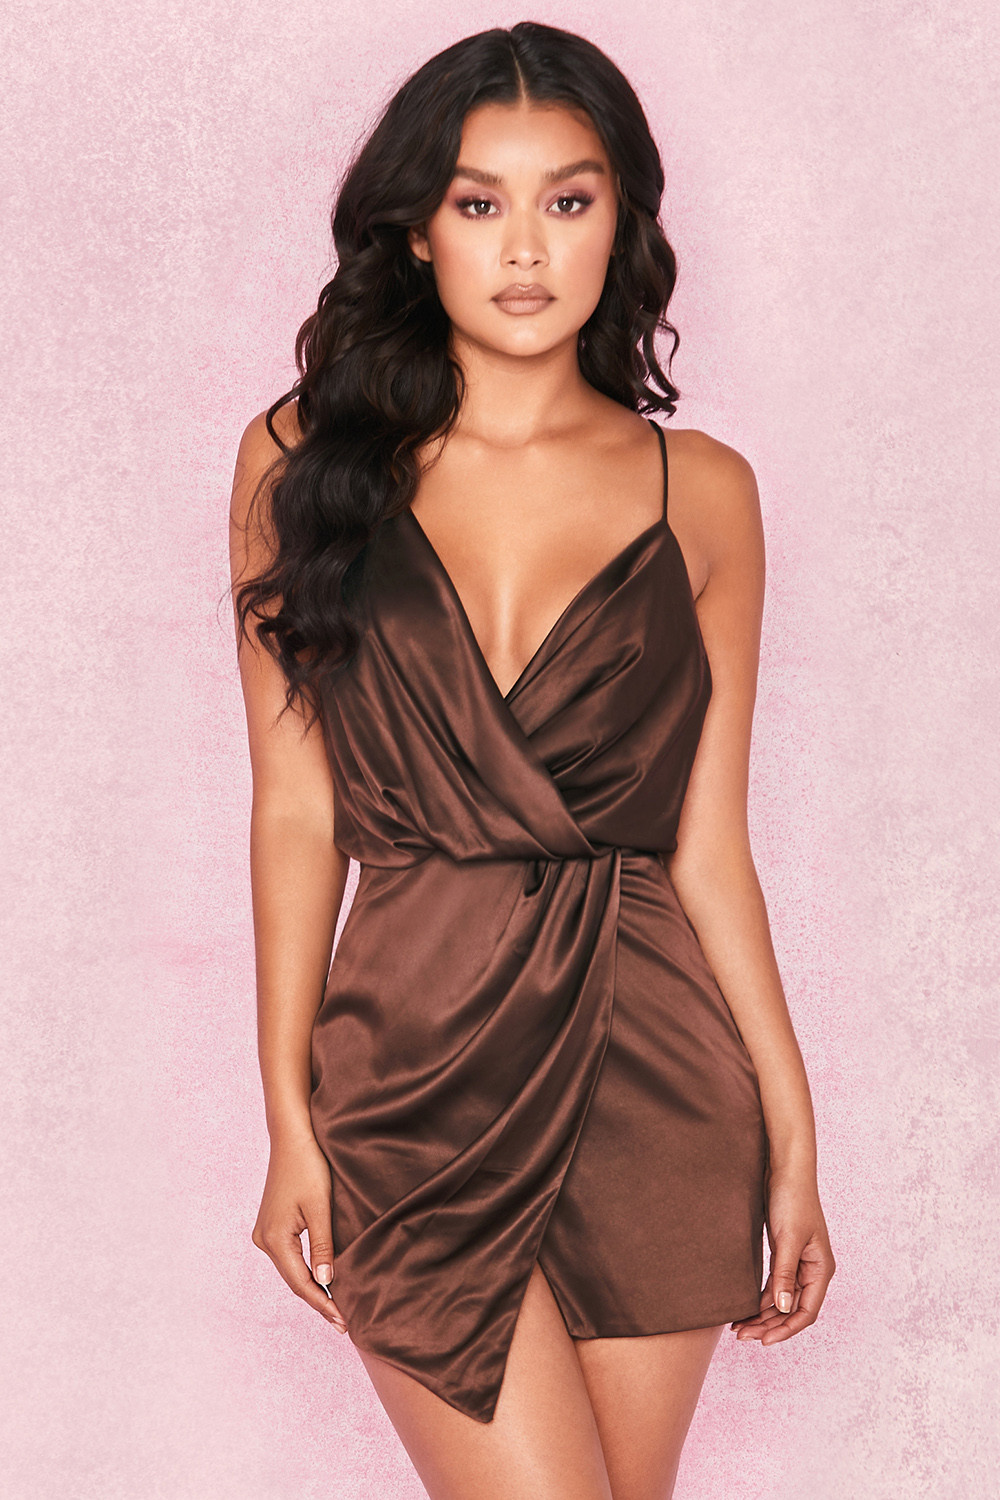 HOUSEOFCB – ROBE TAUPE SATIN